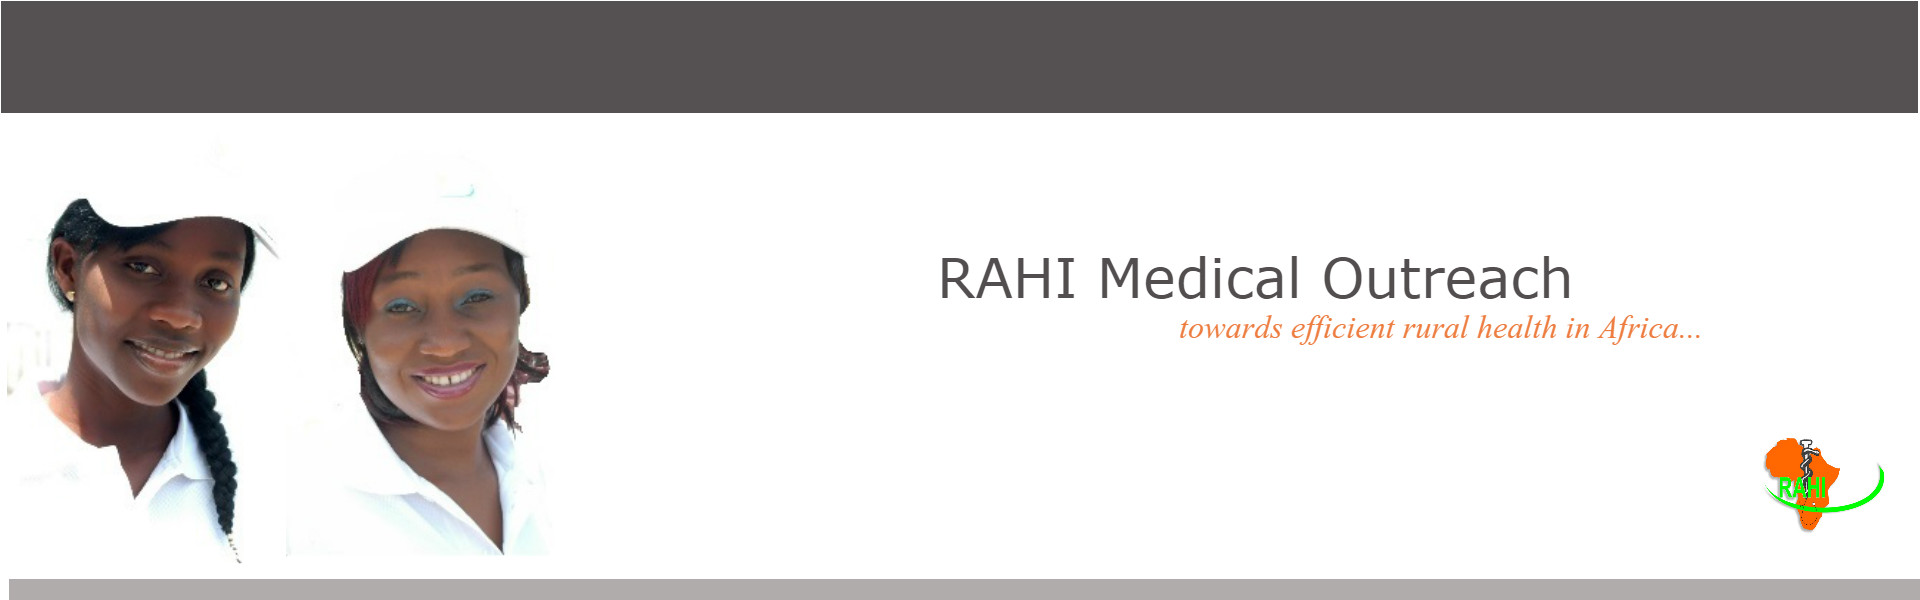 RAHI Medical Outreach